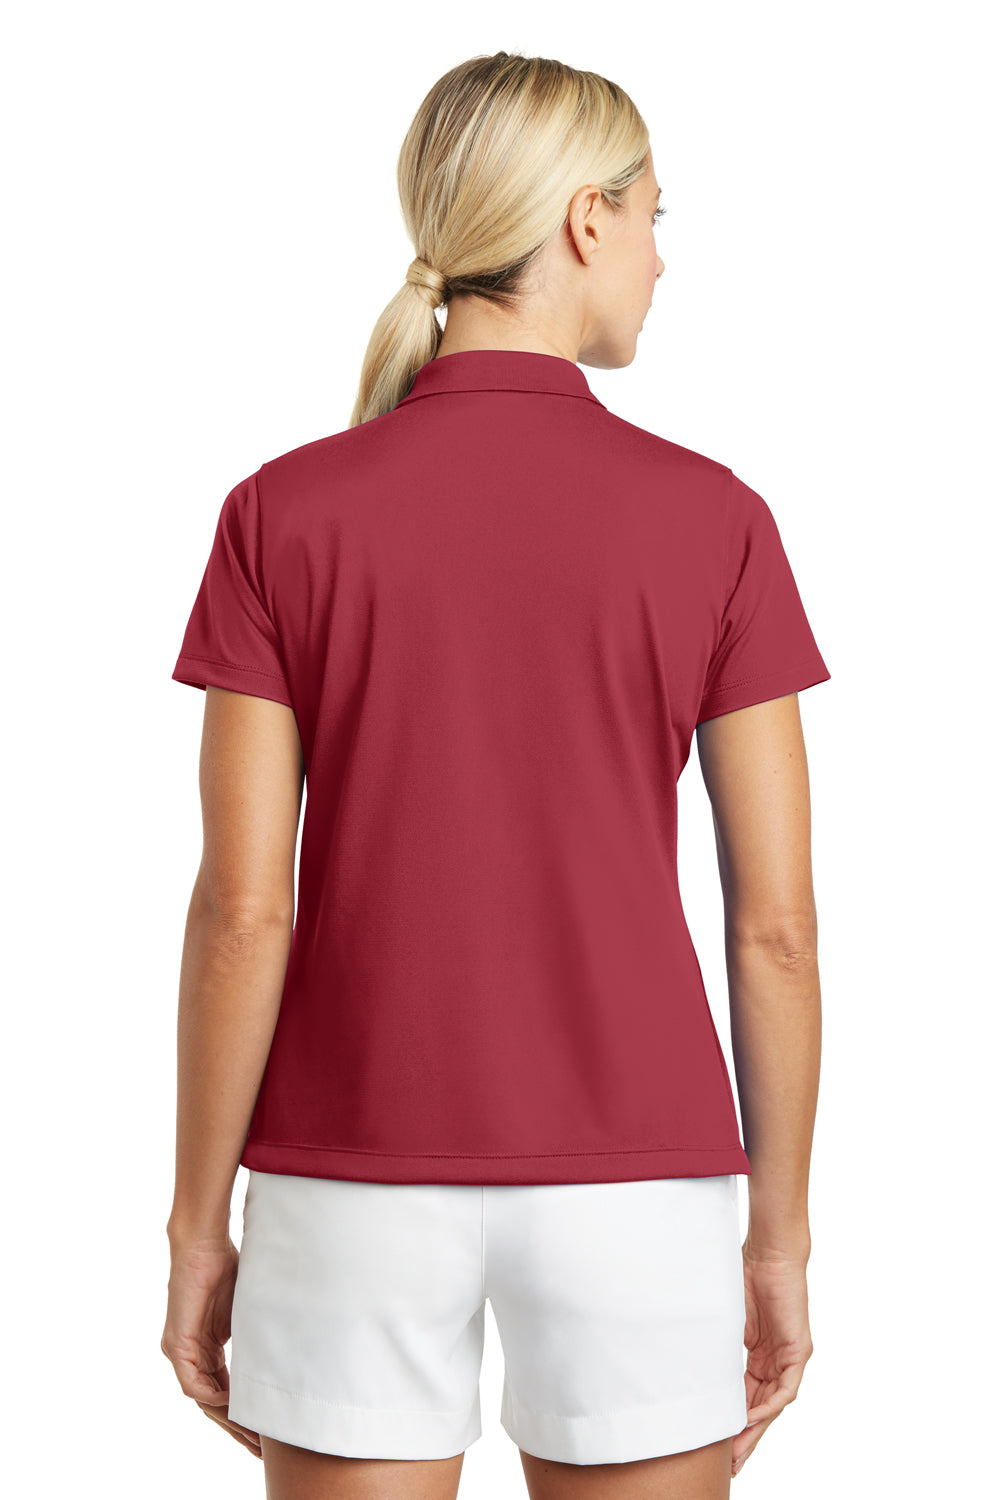 Nike 203697 Womens Tech Basic Dri-Fit Moisture Wicking Short Sleeve Polo Shirt Pro Red Back